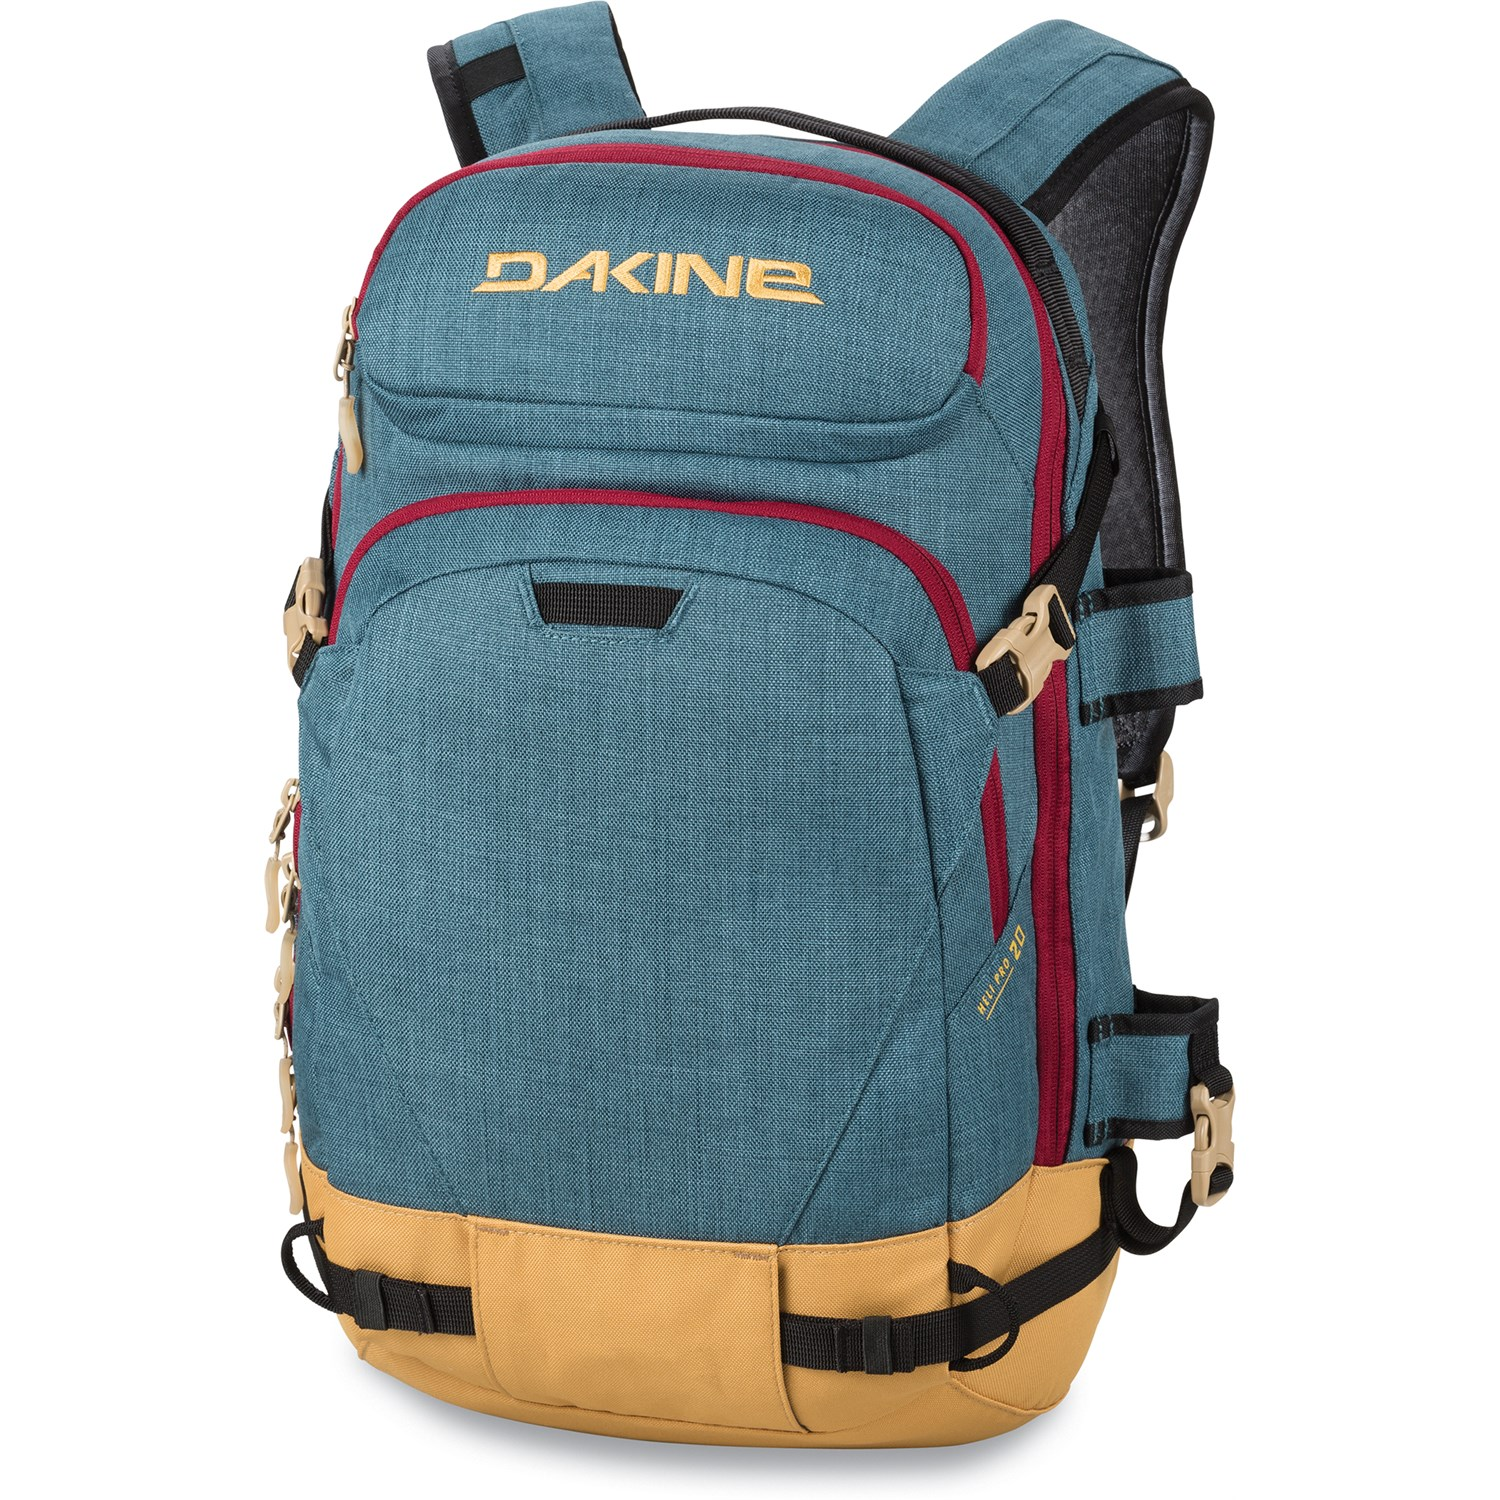 dakine heli 11l backpack with 1979 Dakine Ladies Backpack on Best Image Dakine Snowboard Backpacks as well Heli pack 11l pacific 47332 likewise 1979 Dakine Ladies Backpack together with Dakine backpacks   dakine womens heli pack 11l snow pack   taos 198221 in addition Dakine backpacks   dakine heli pro dlx 2 snow pack   taiga 198209.